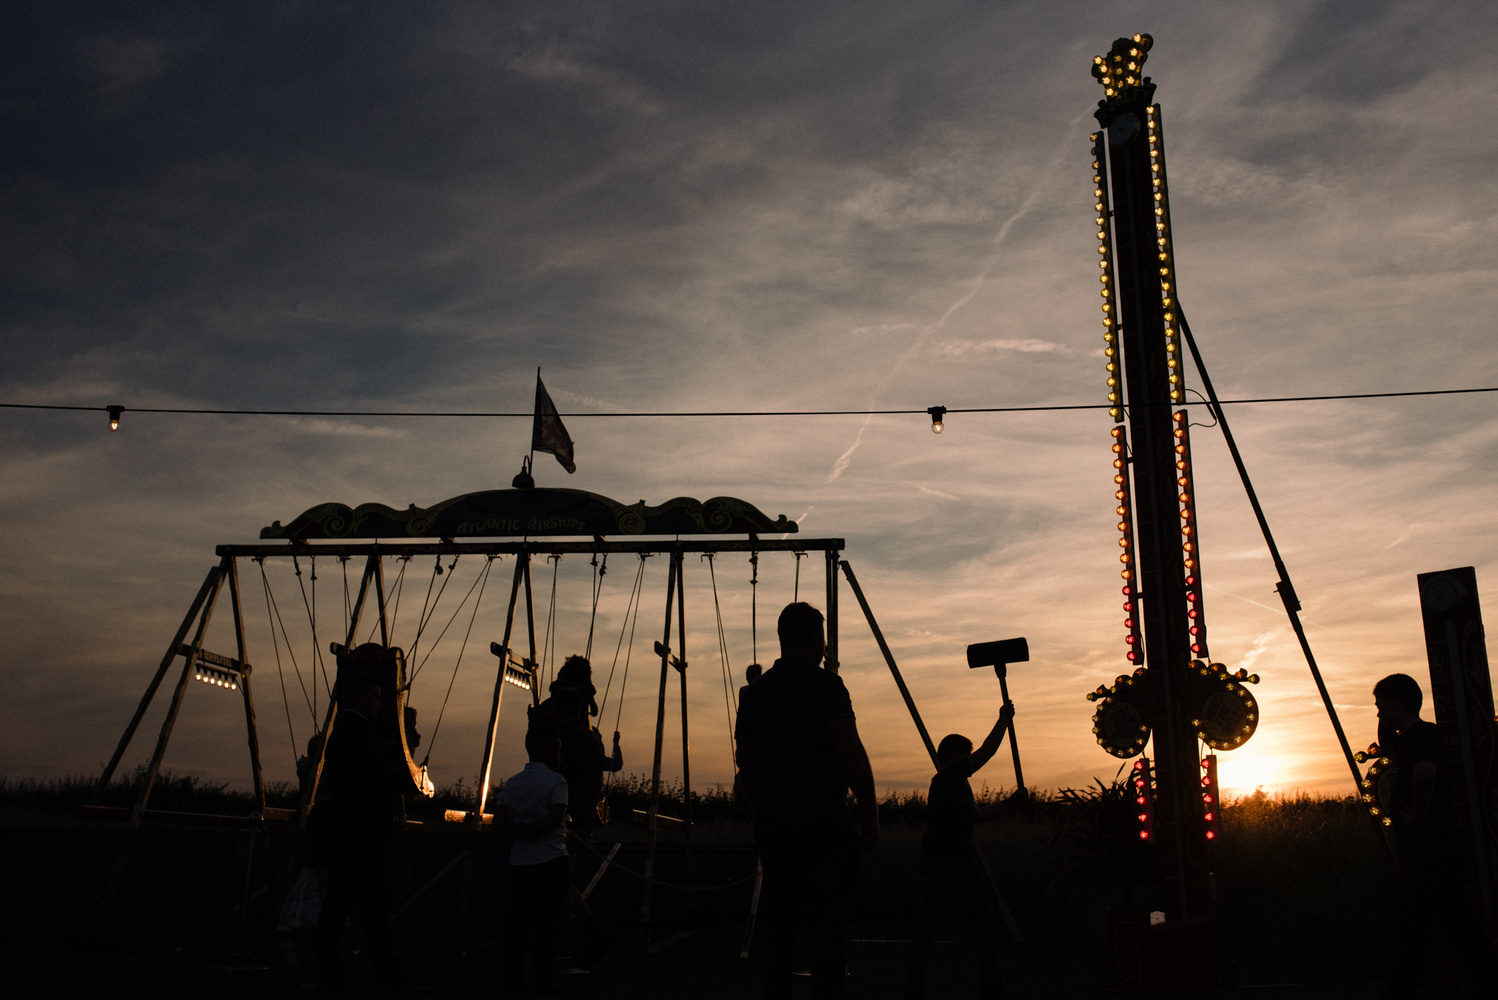 Children playing at a fairground during sunset.